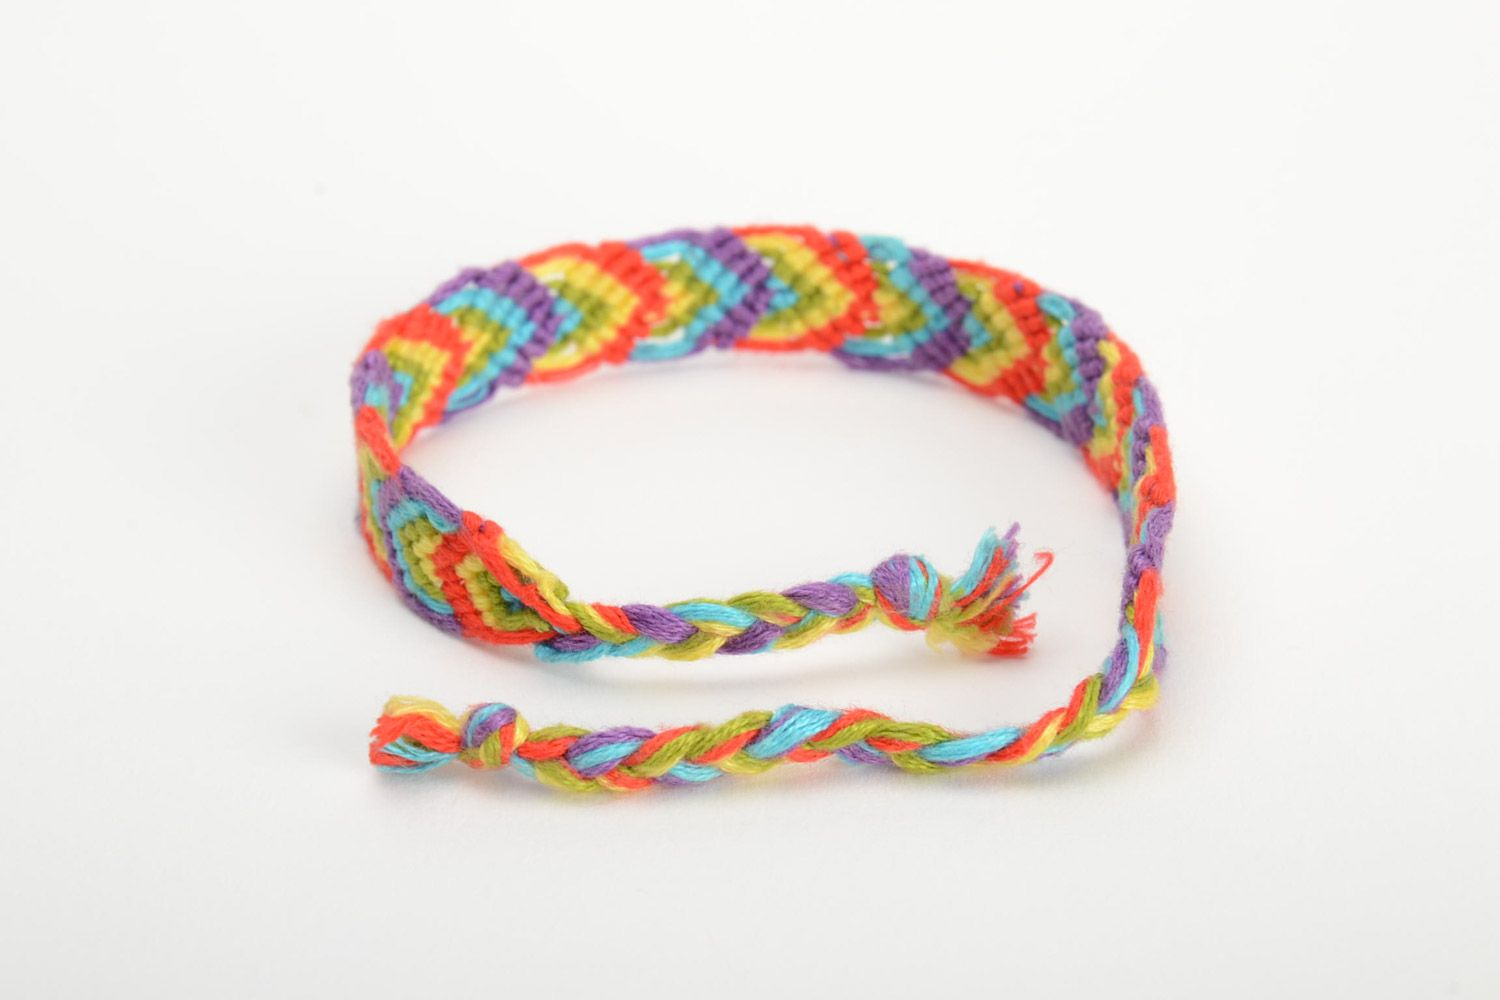 bracelet to make bracelets yarn beads embroidery friendship thread idea cool easy wondrous design names with floss